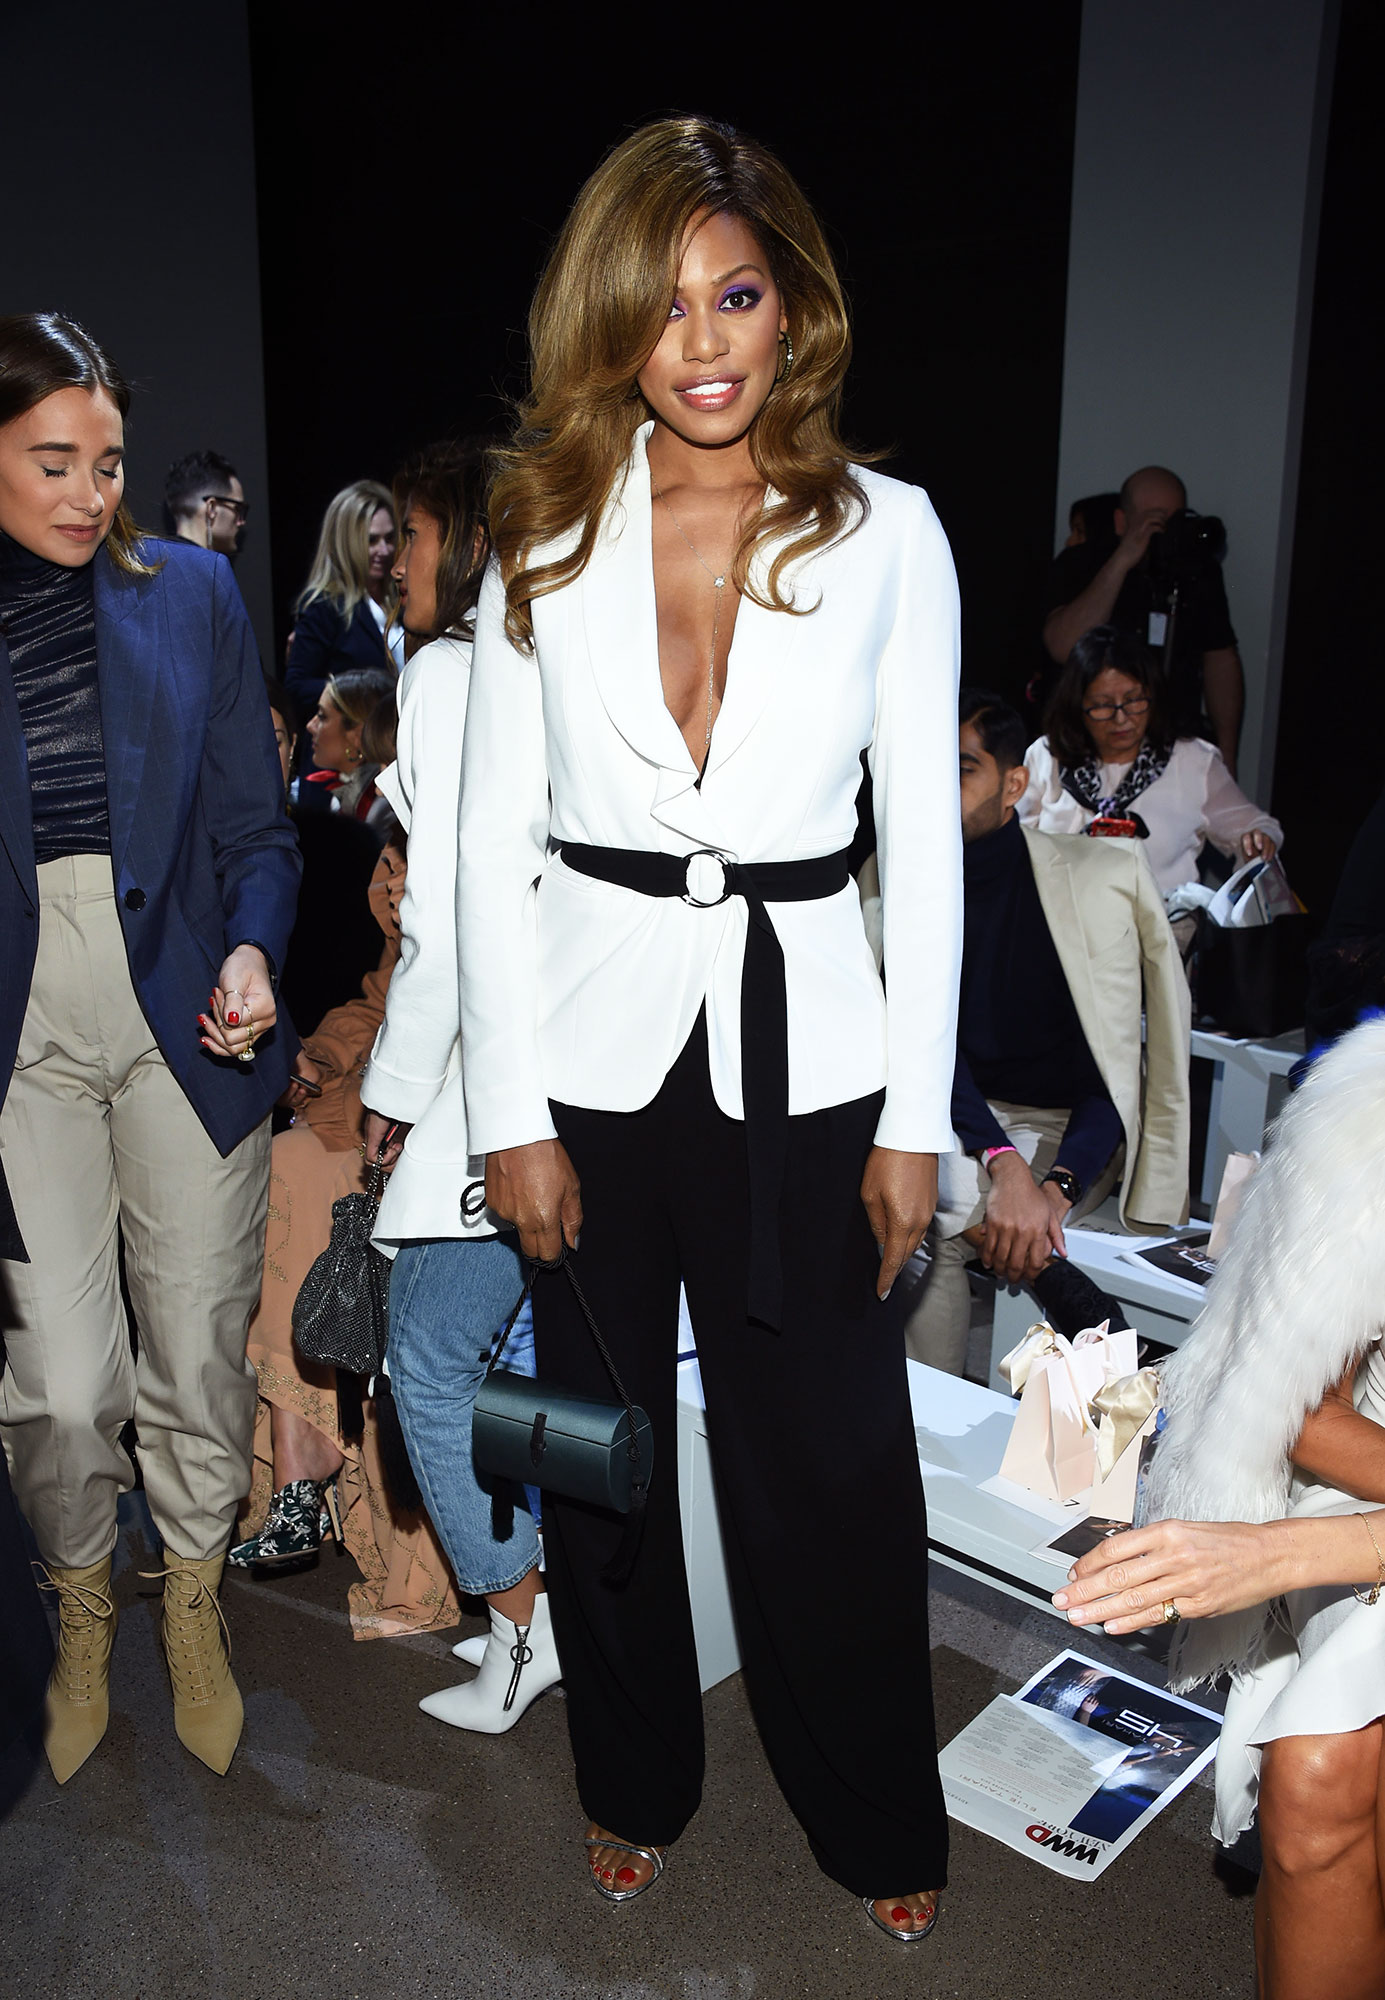 Laverne Cox - The Orange is the New Black actress sat front row at Elie Tahari on February 7 looking smokin' hot in a crisp white jacket sans shirt that she tied closed with a black belt.